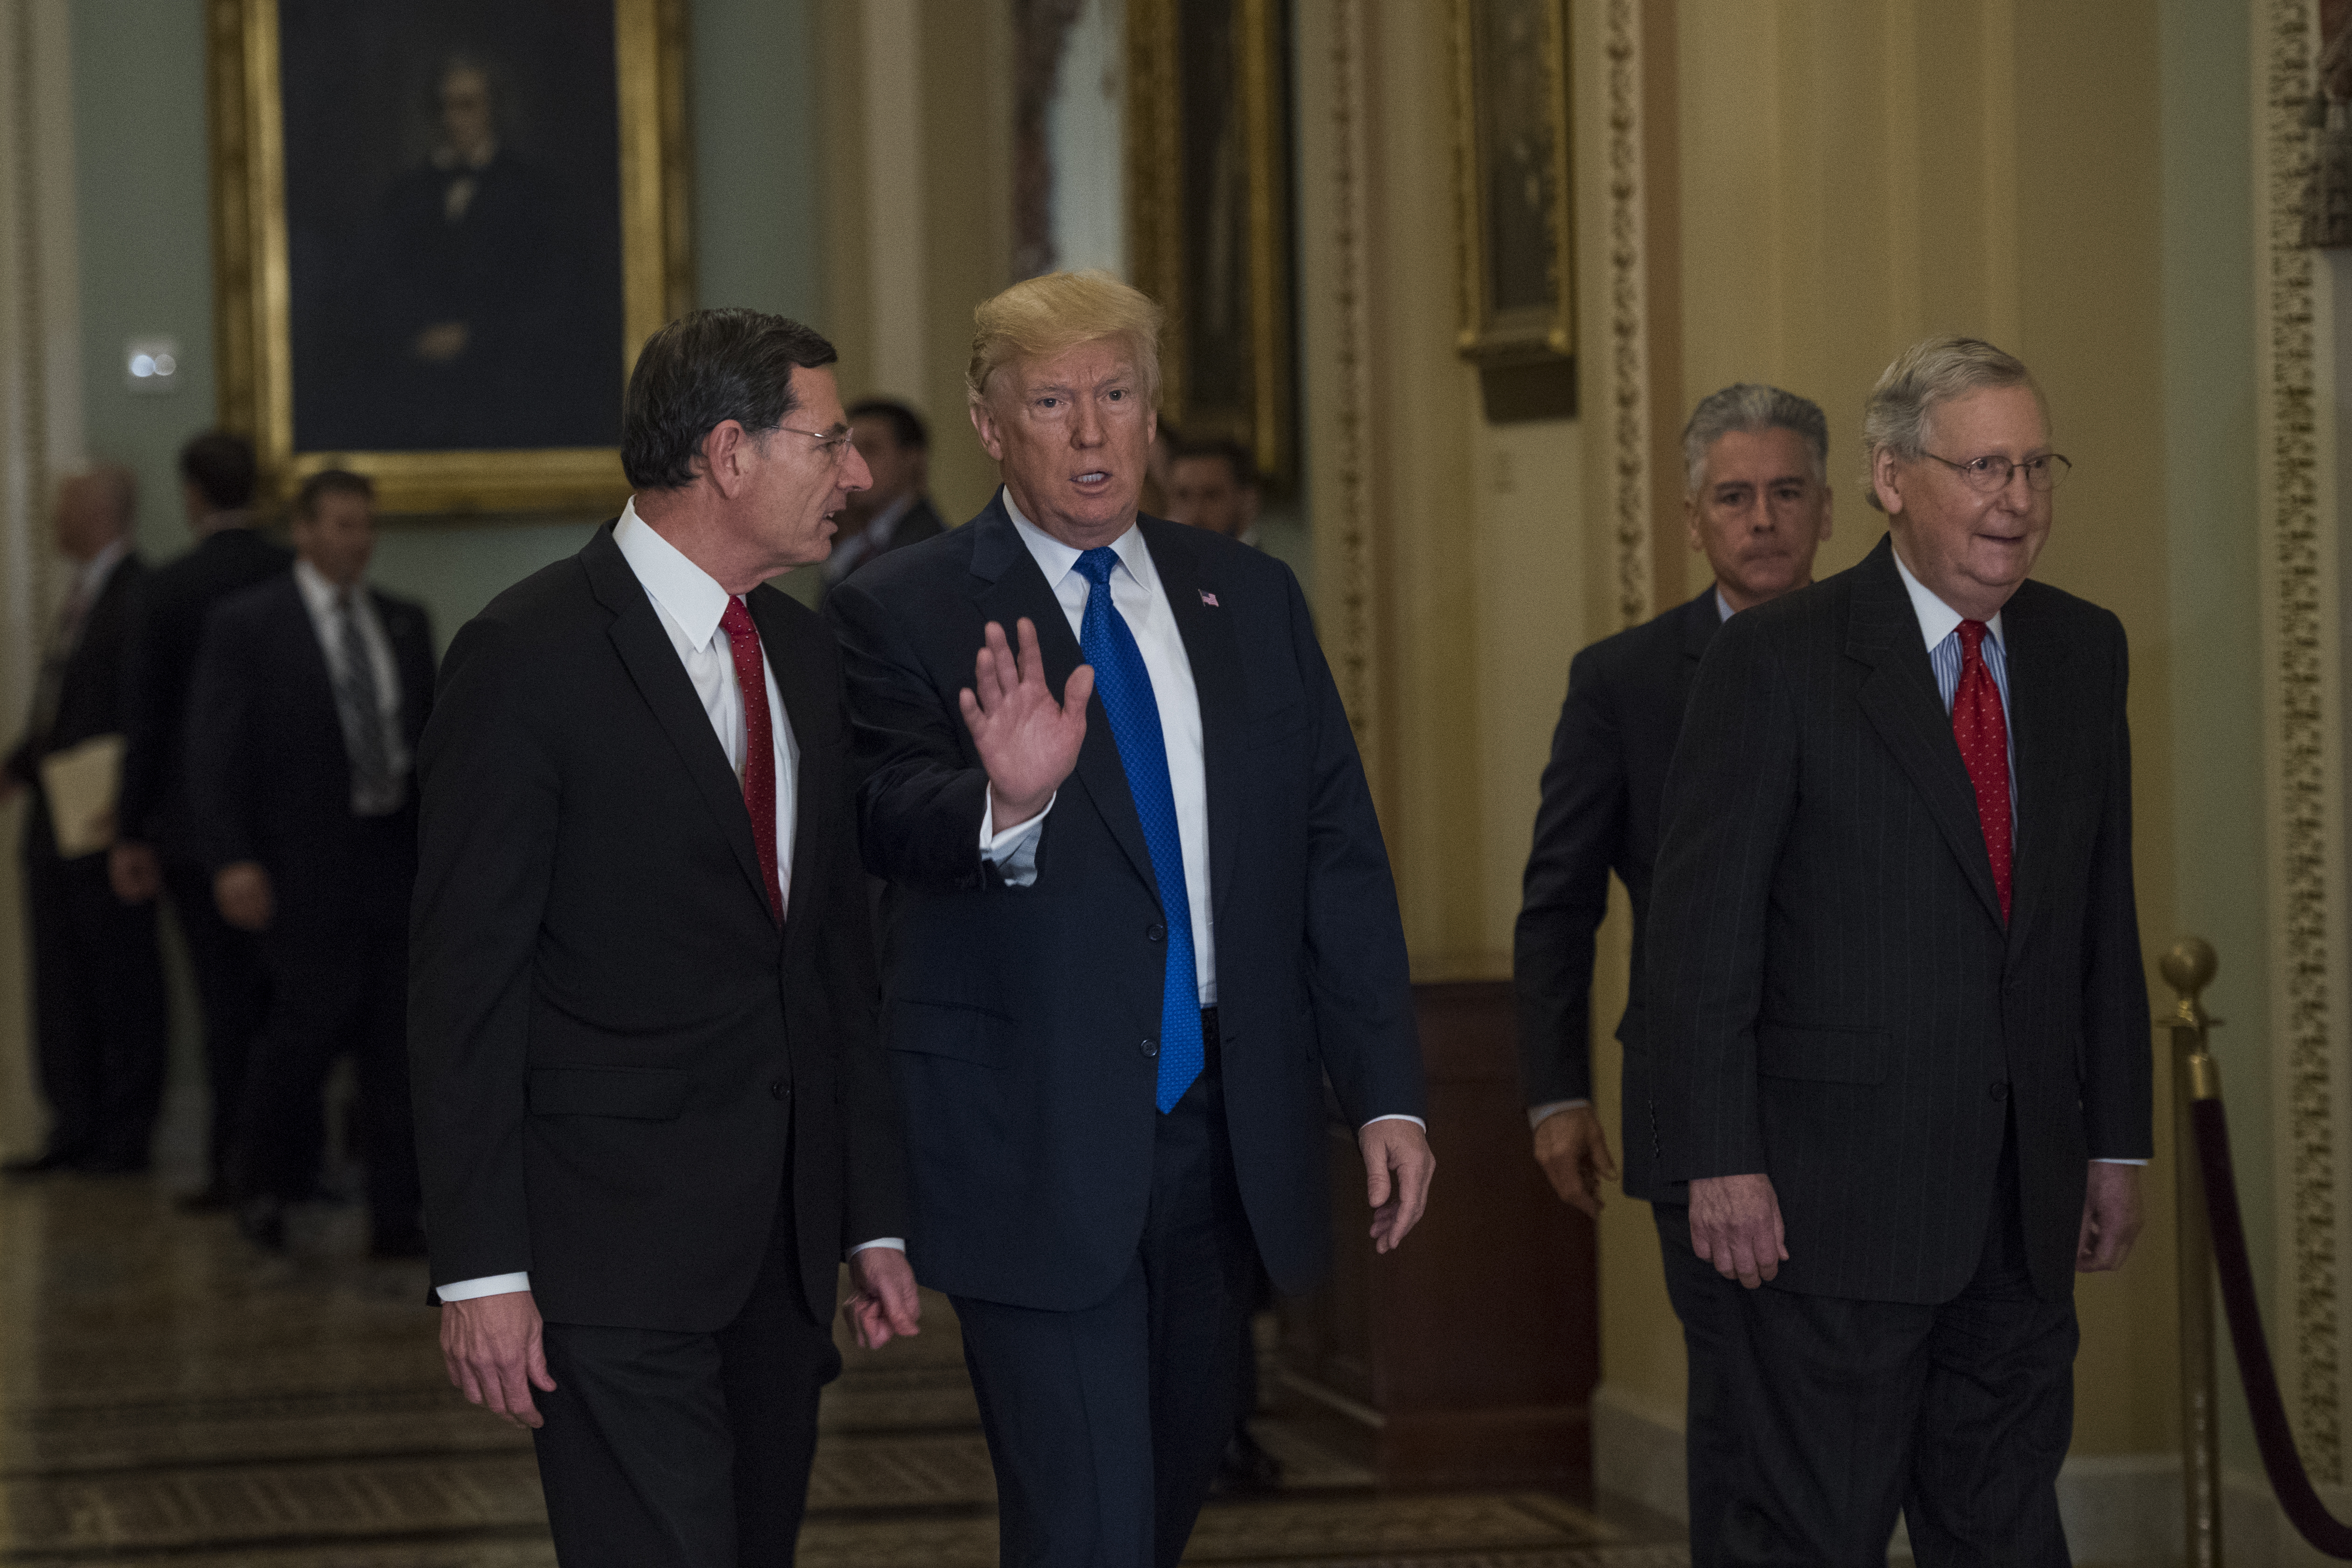 President Donald Trump arrives with Sen. John Barrasso, R-Wyo., left, and Senate Majority Leader Mitch McConnell, R-Ky., for the Republican Senate Policy luncheon in the Capitol to discuss the tax reform bill on November 28, 2017.